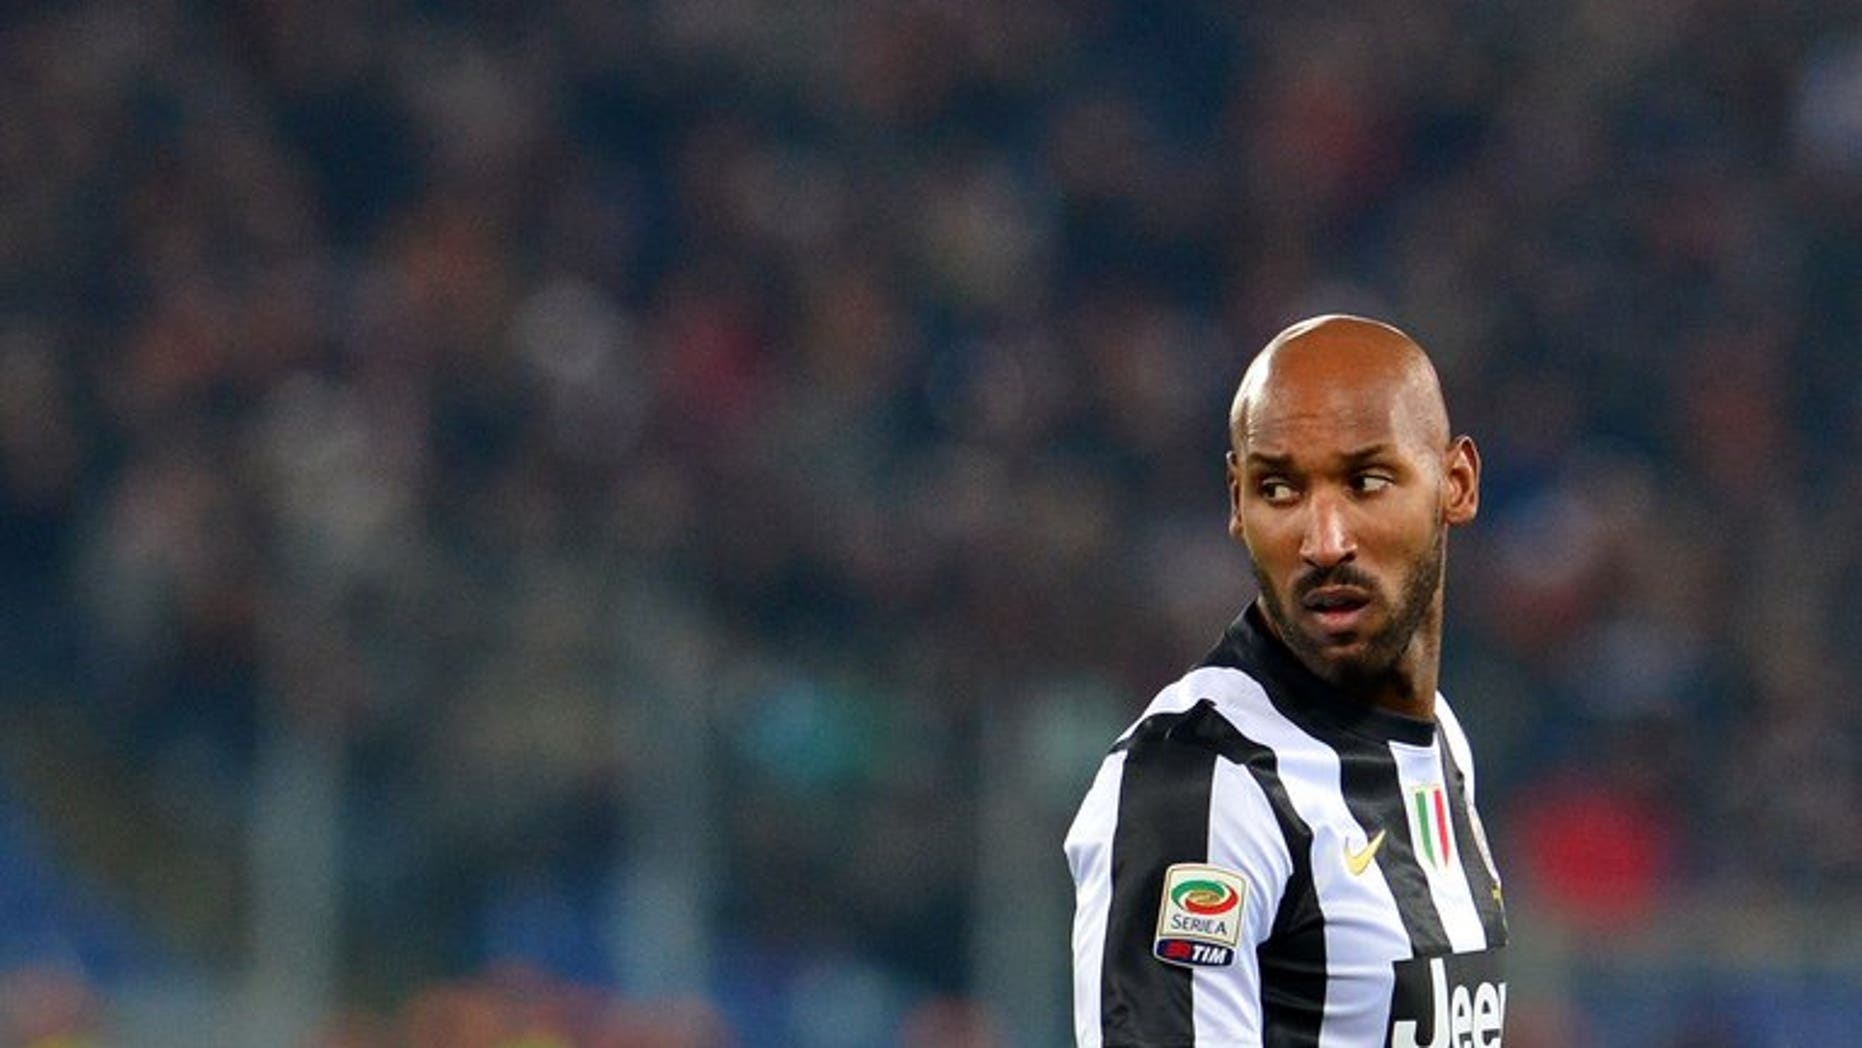 Nicolas Anelka is pictured on February 16, 2013 at the Olympic Stadium in Rome. Anelka will miss West Bromwich Albion's game against Everton this weekend after being granted compassionate leave, the Premier League club announced on Thursday.